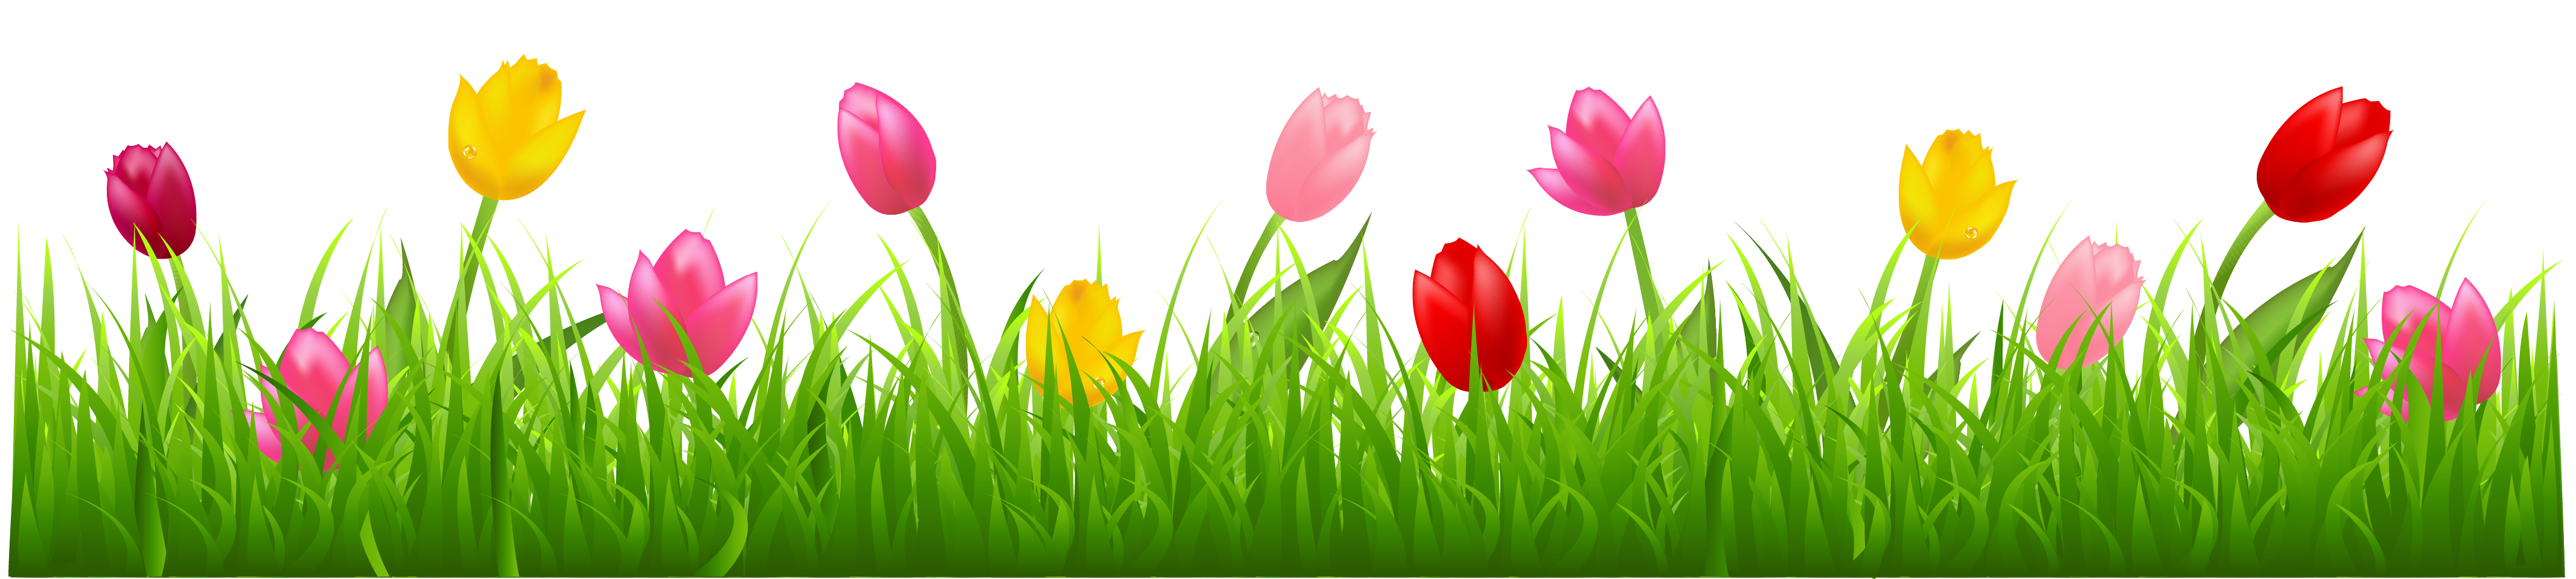 Grass clipart tulip. With colorful tulips png